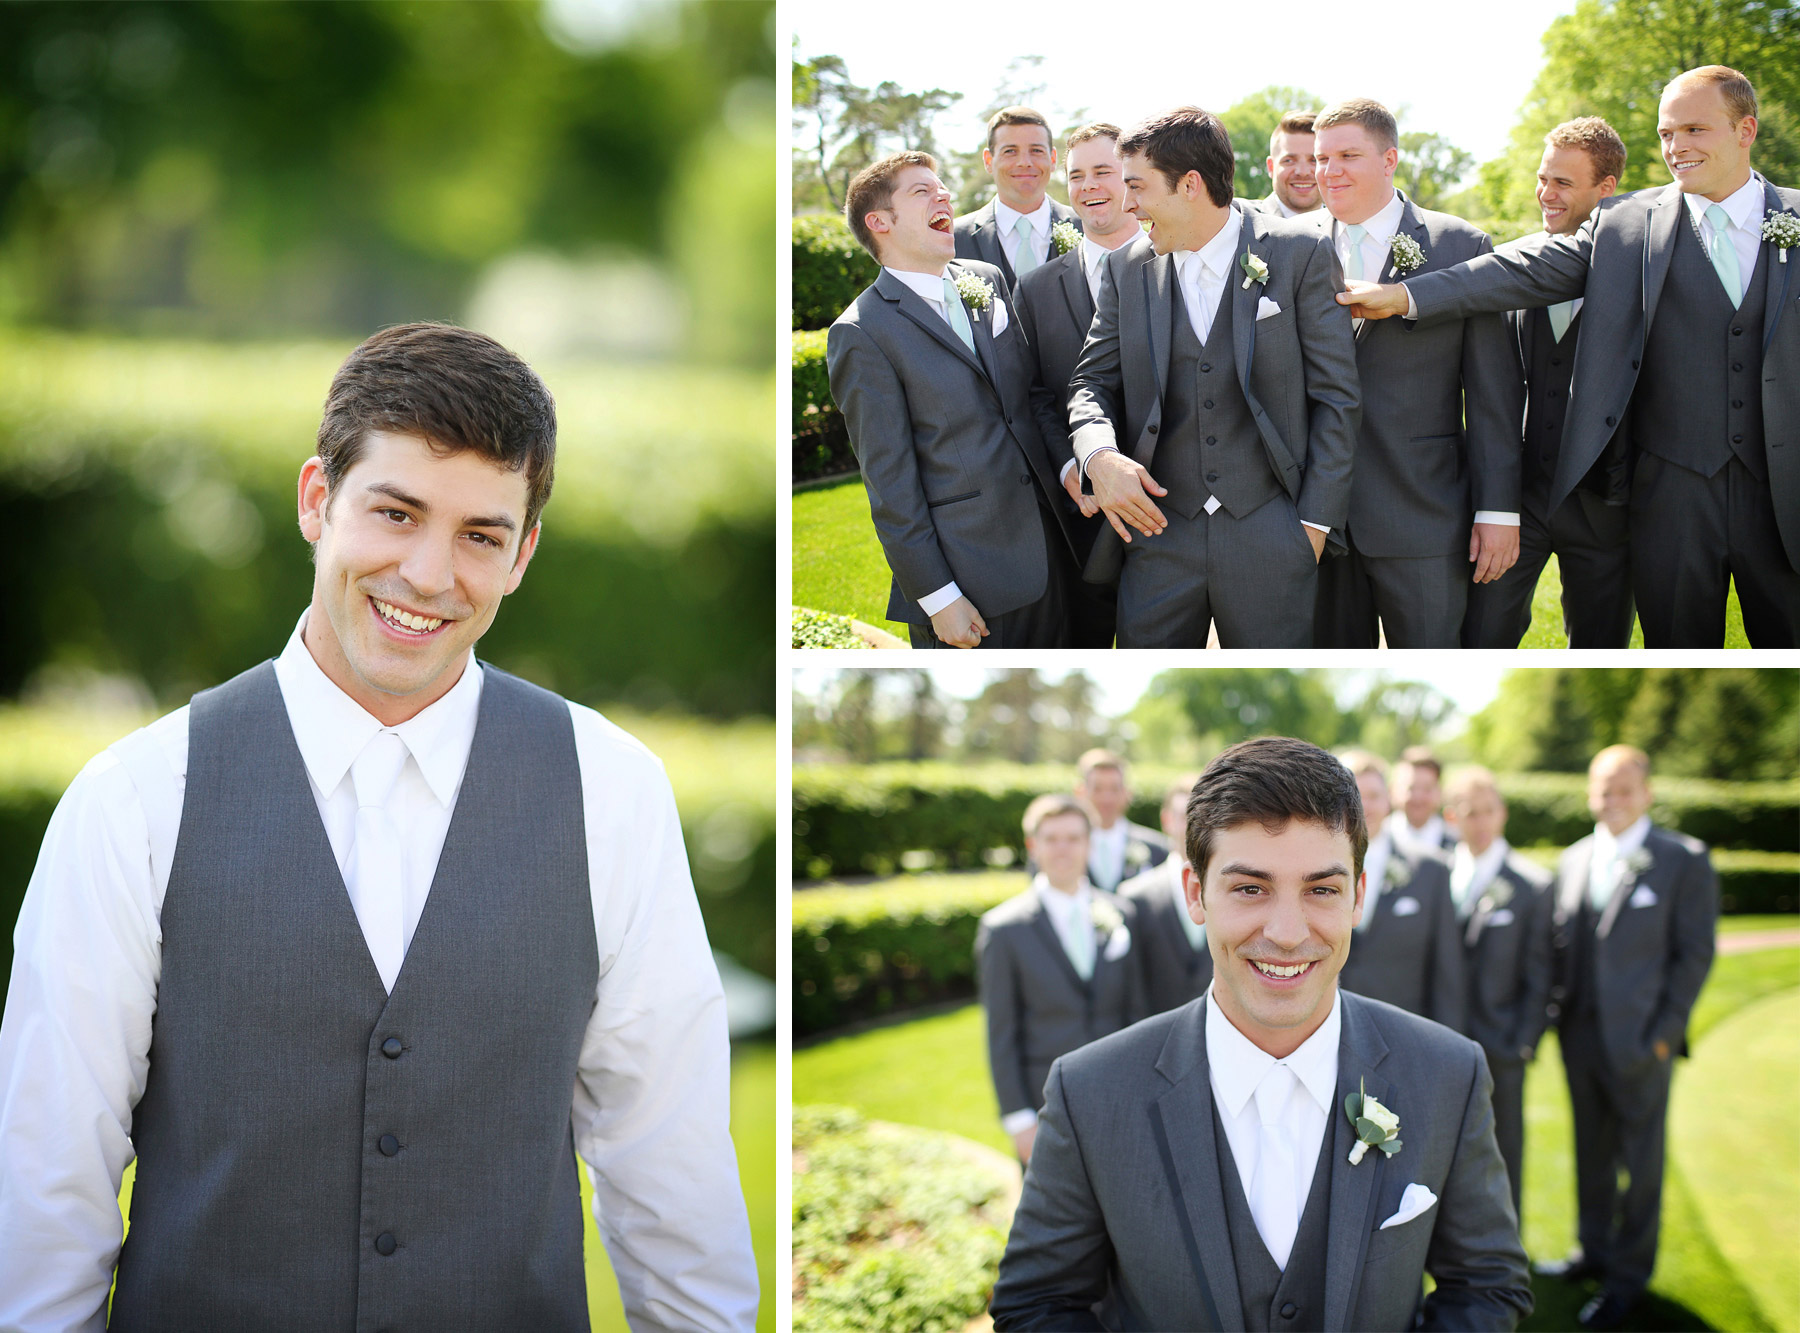 10-Minneapolis-Minnesota-Wedding-Photography-by-Vick-Photography-at-Minikahda-Country-Club-Groomsmen-Sarah-&-Chad.jpg